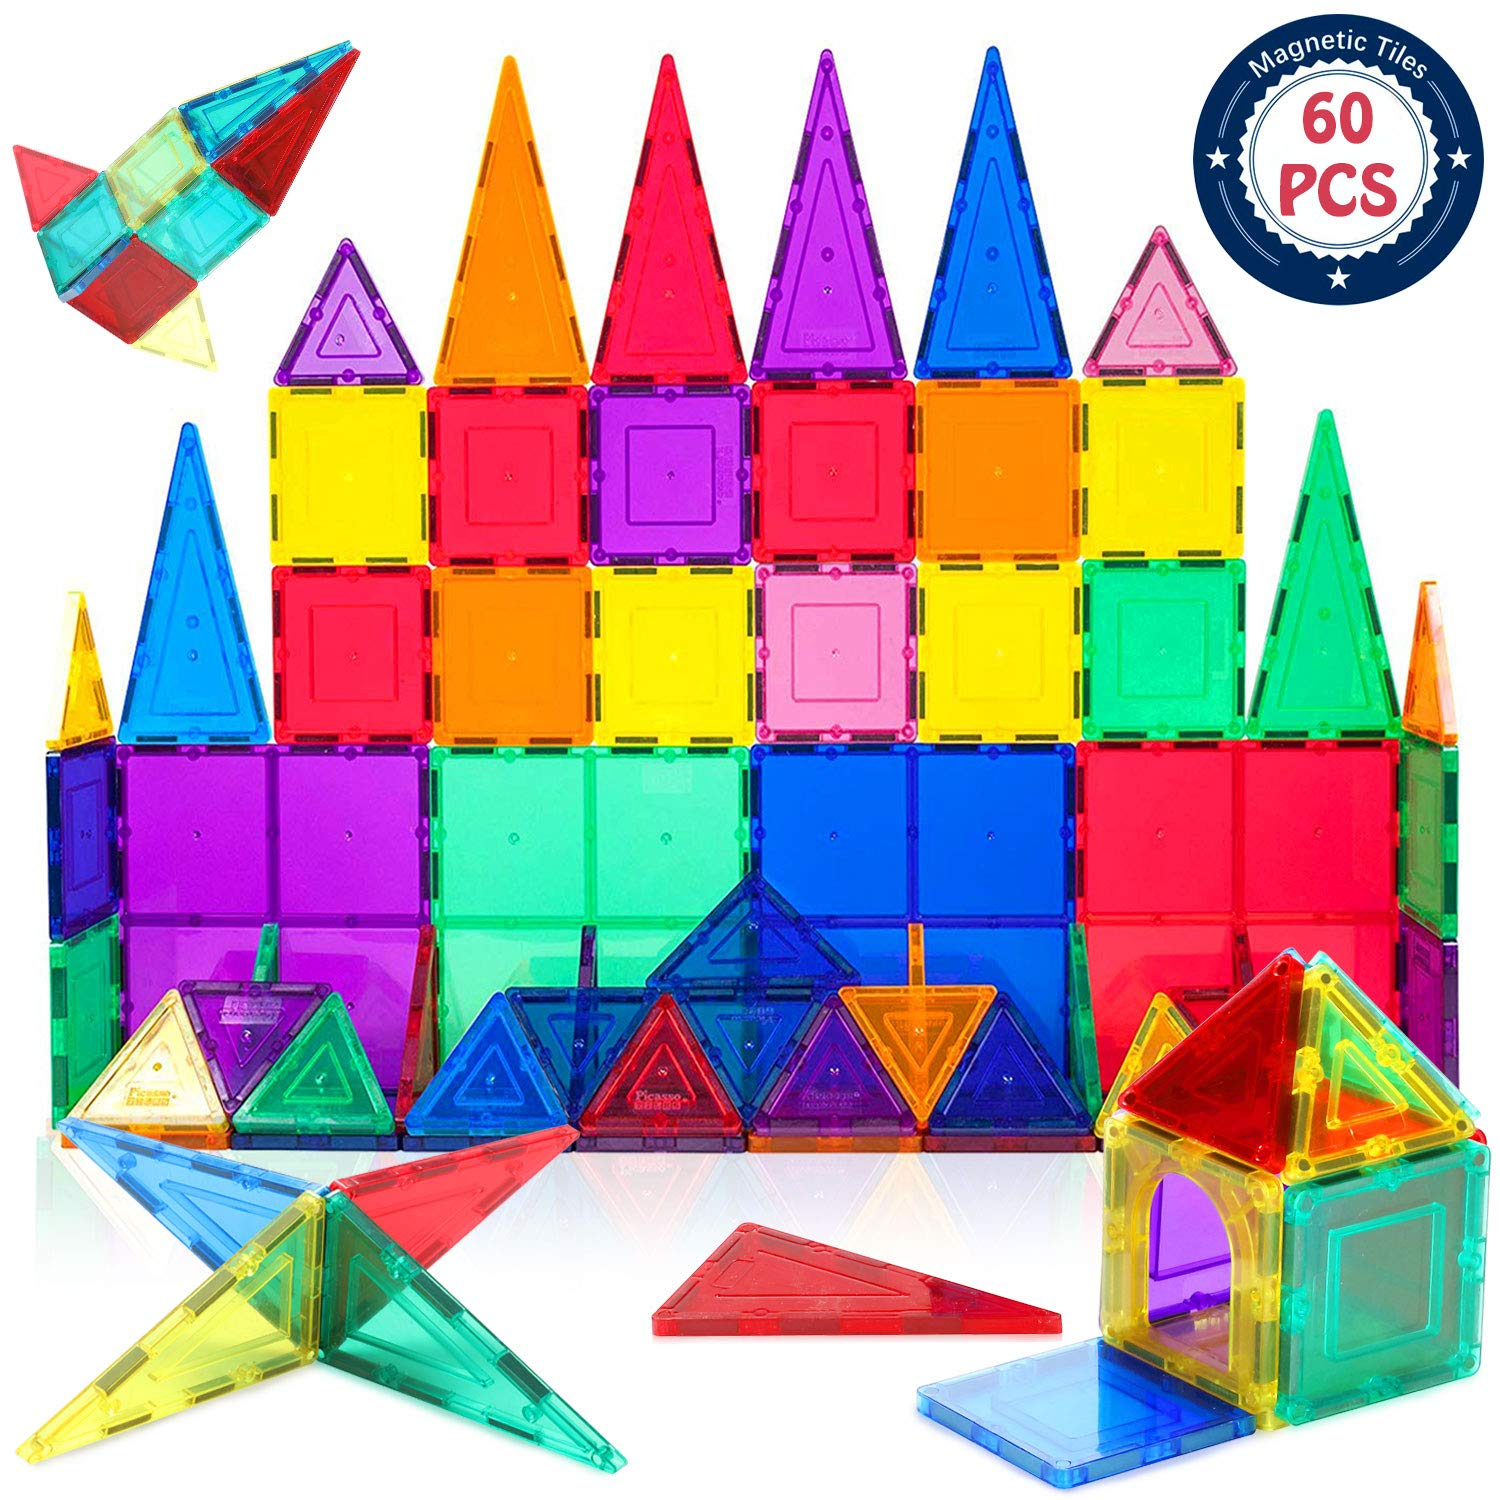 HOMOFY Magnet TilesToys 60Pcs Oversize 3D Magnetic Building Blocks Tiles Set,Inspirational Educational Toys for 3+ Year Old Boys Gilrs Gifts by HOMOFY